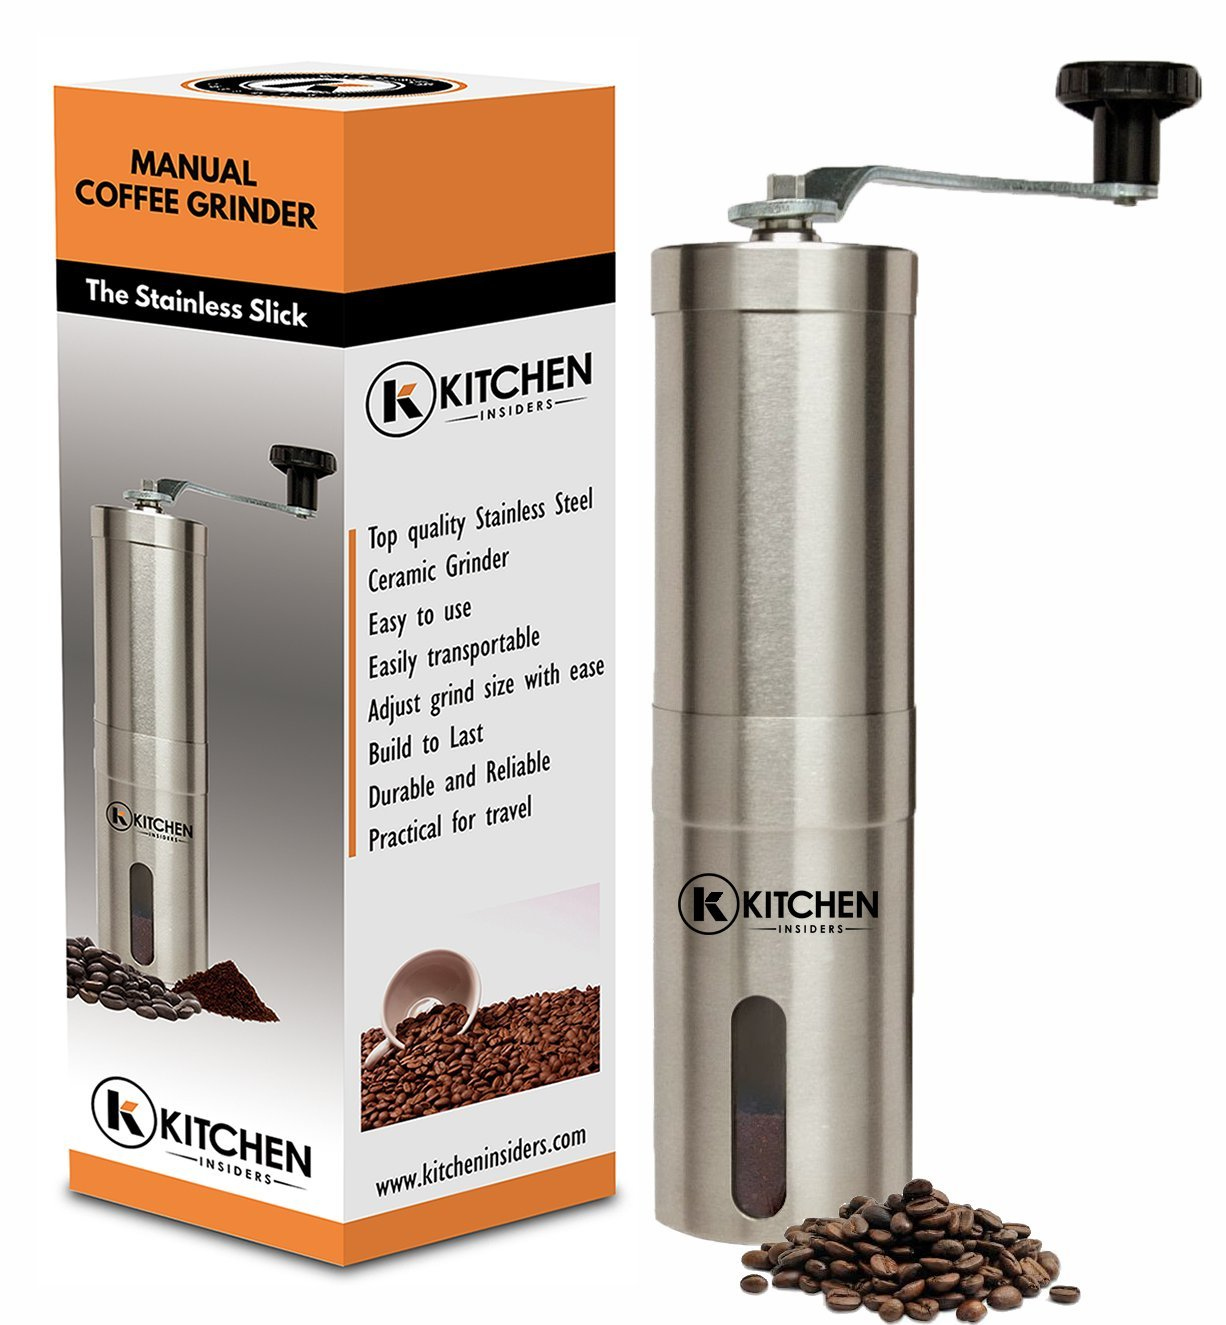 Kitchen Insiders Stainless Steel Manual Coffee Grinder